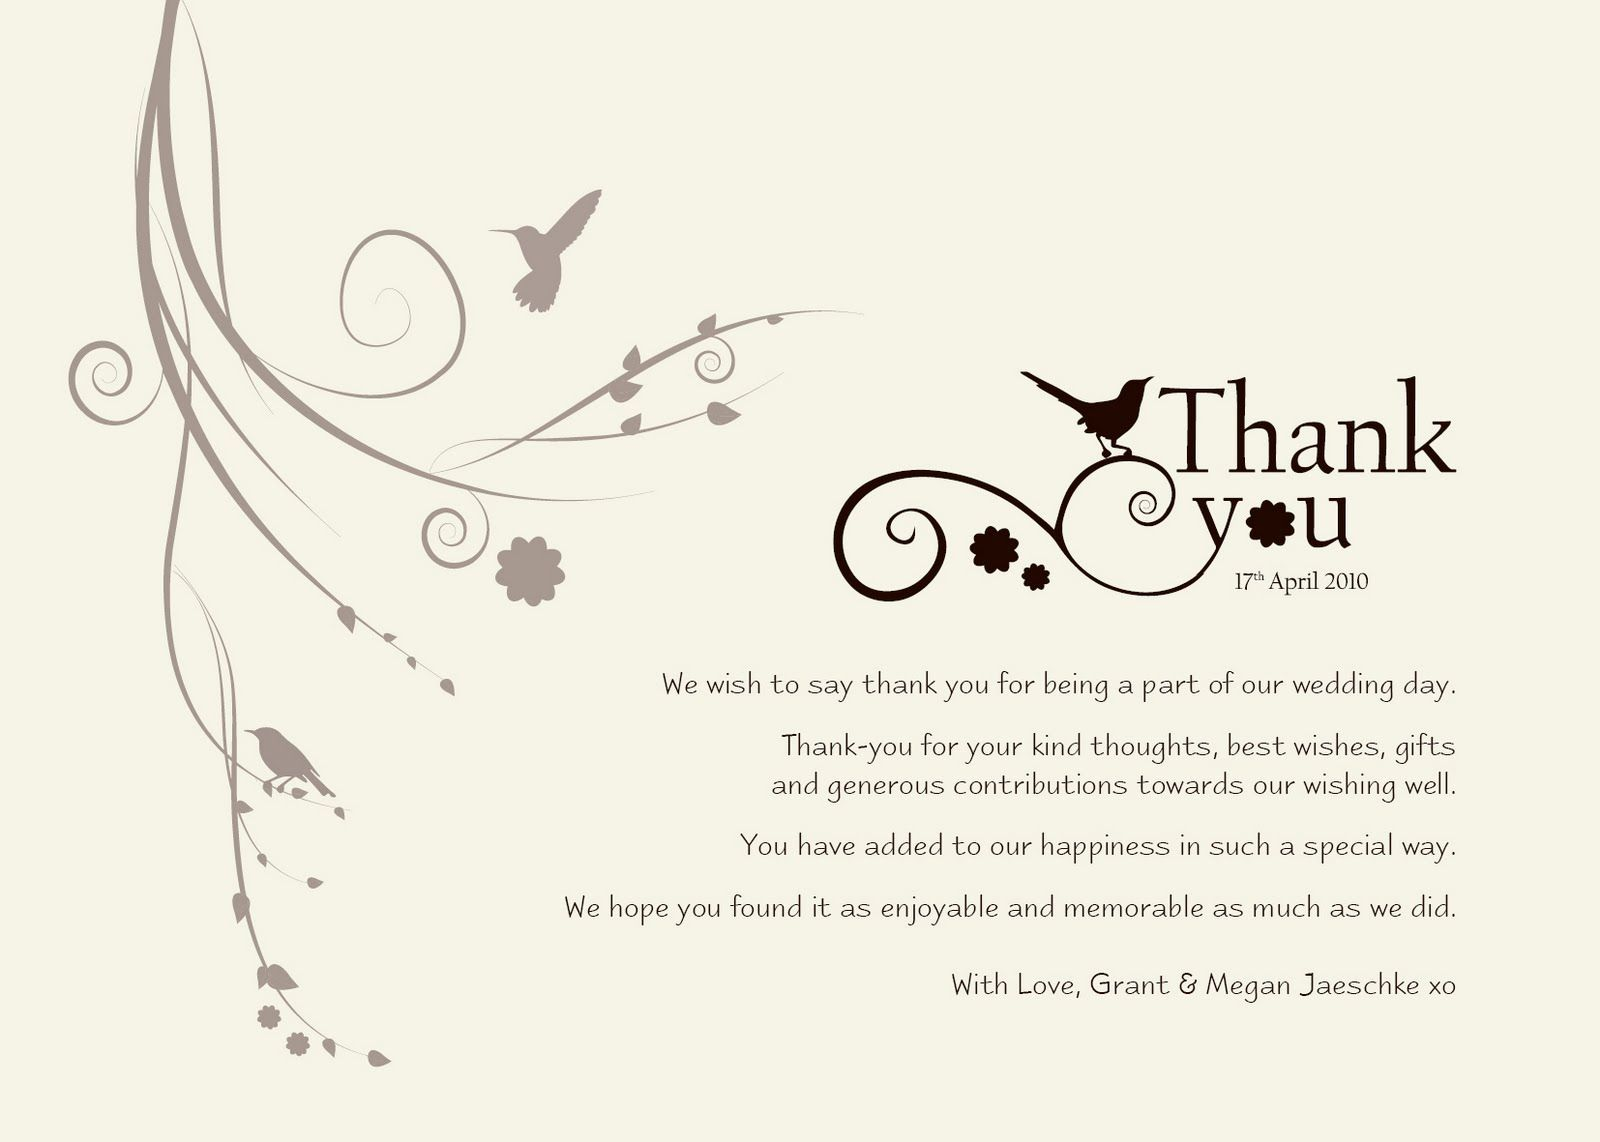 Thank You Message For Wedding Gift Money : thank you card wording wedding thank you cards wedding wishes wedding ...